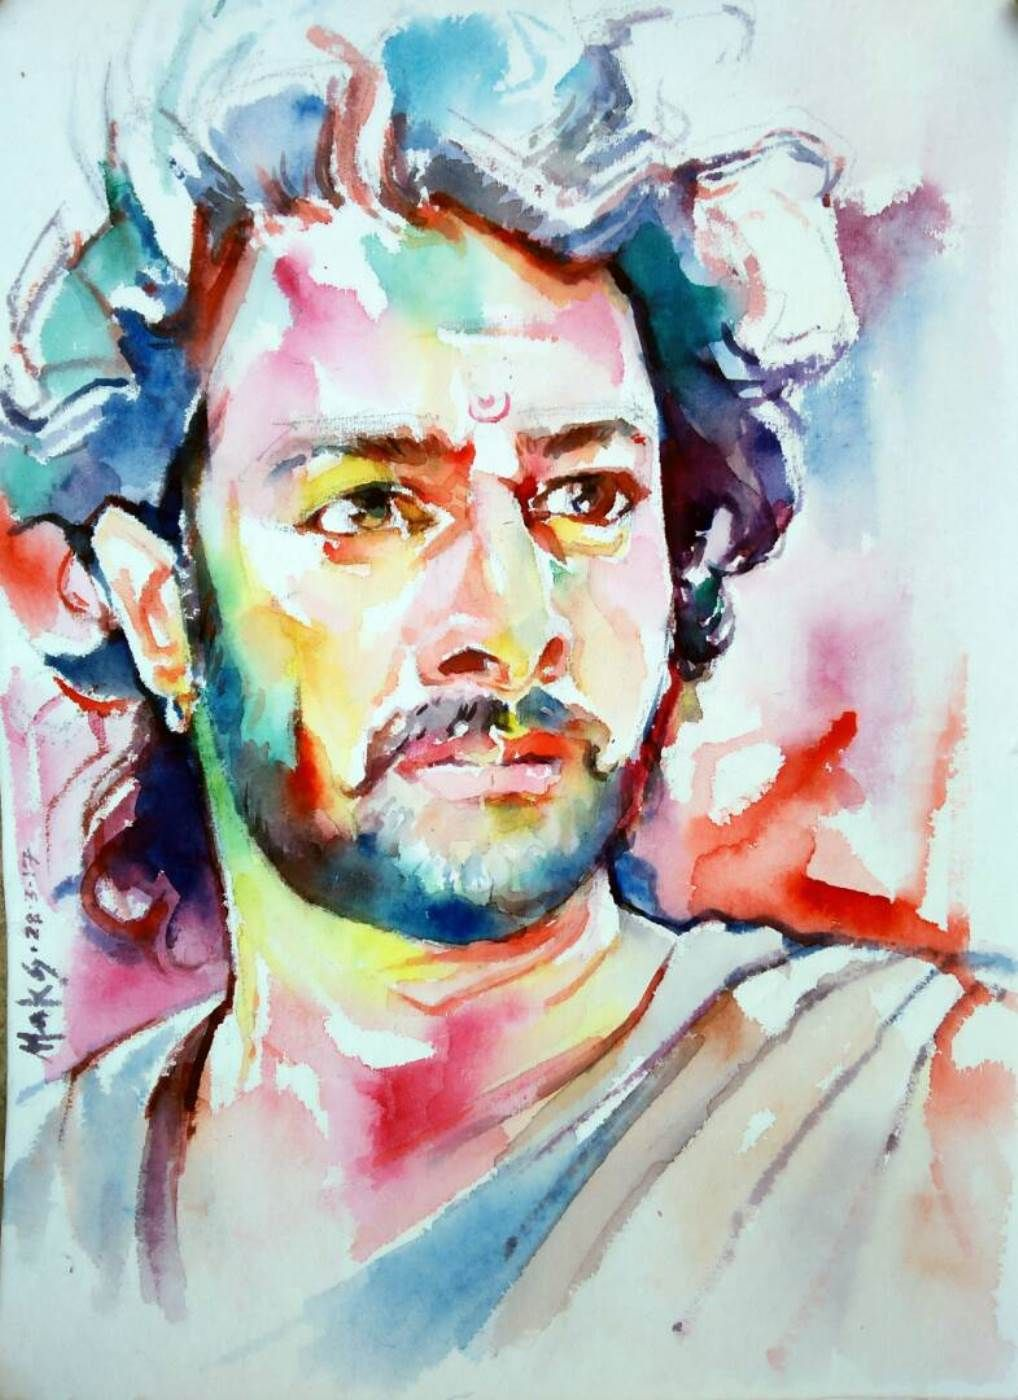 A Colorful Watercolor Portrait Of An Indian Actor Prabhas In His